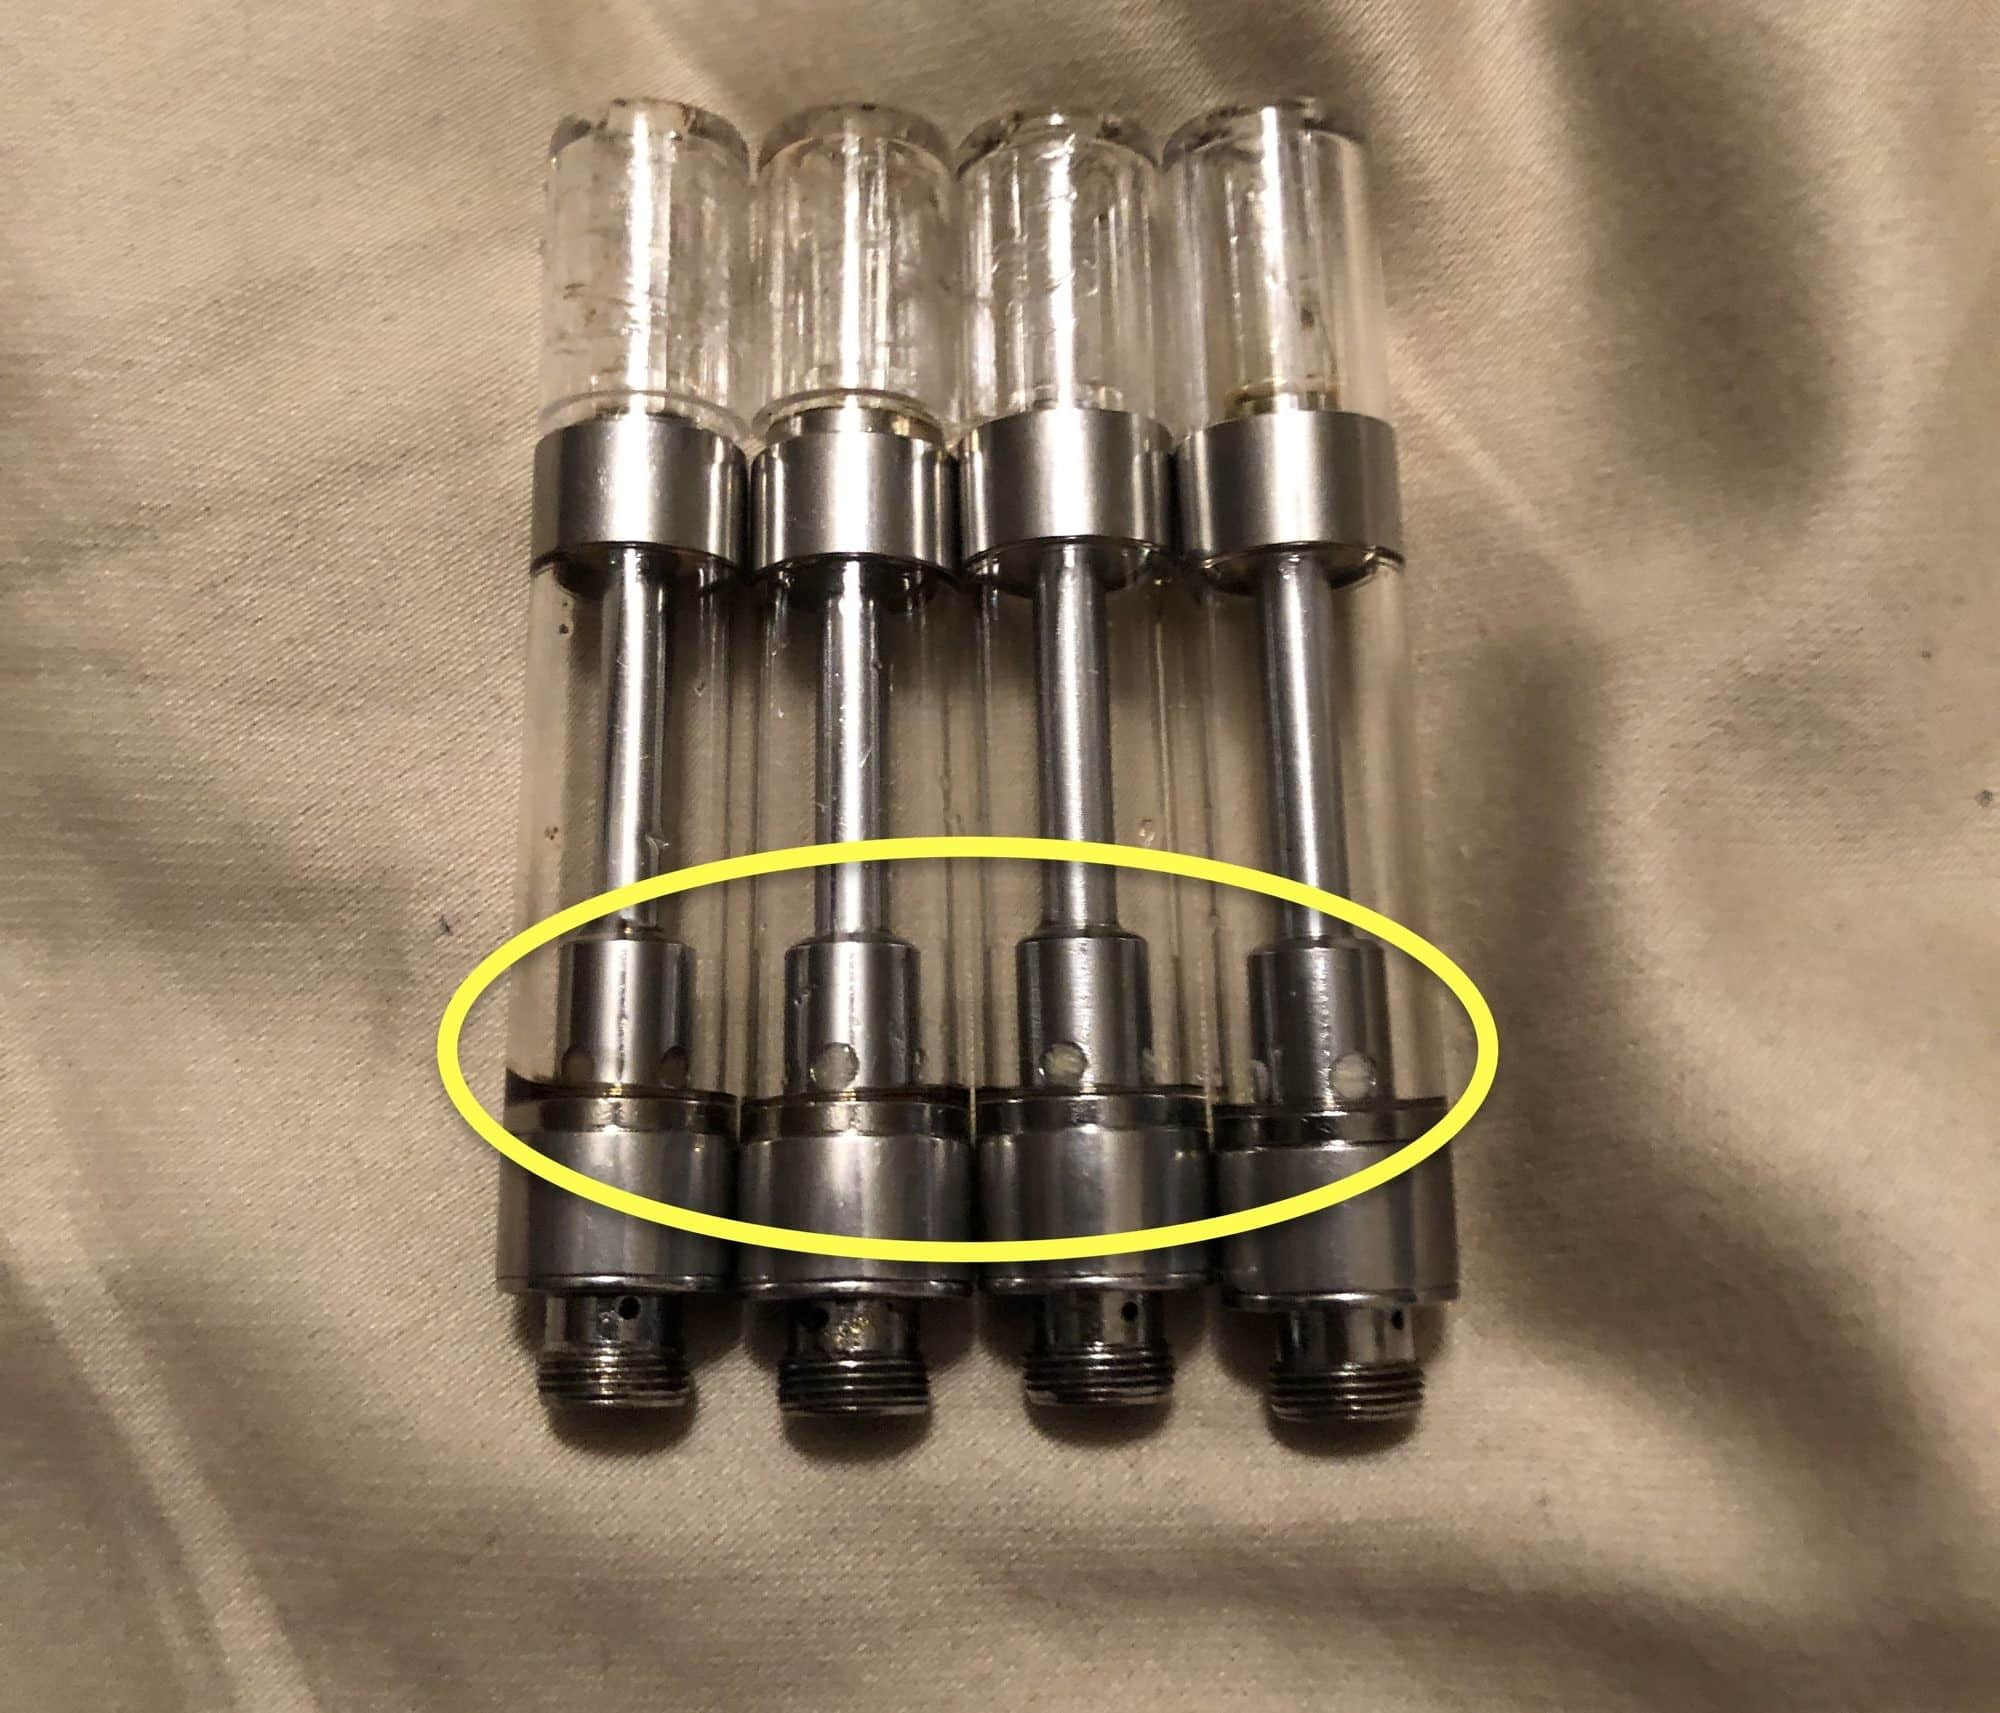 real ccell cartridges